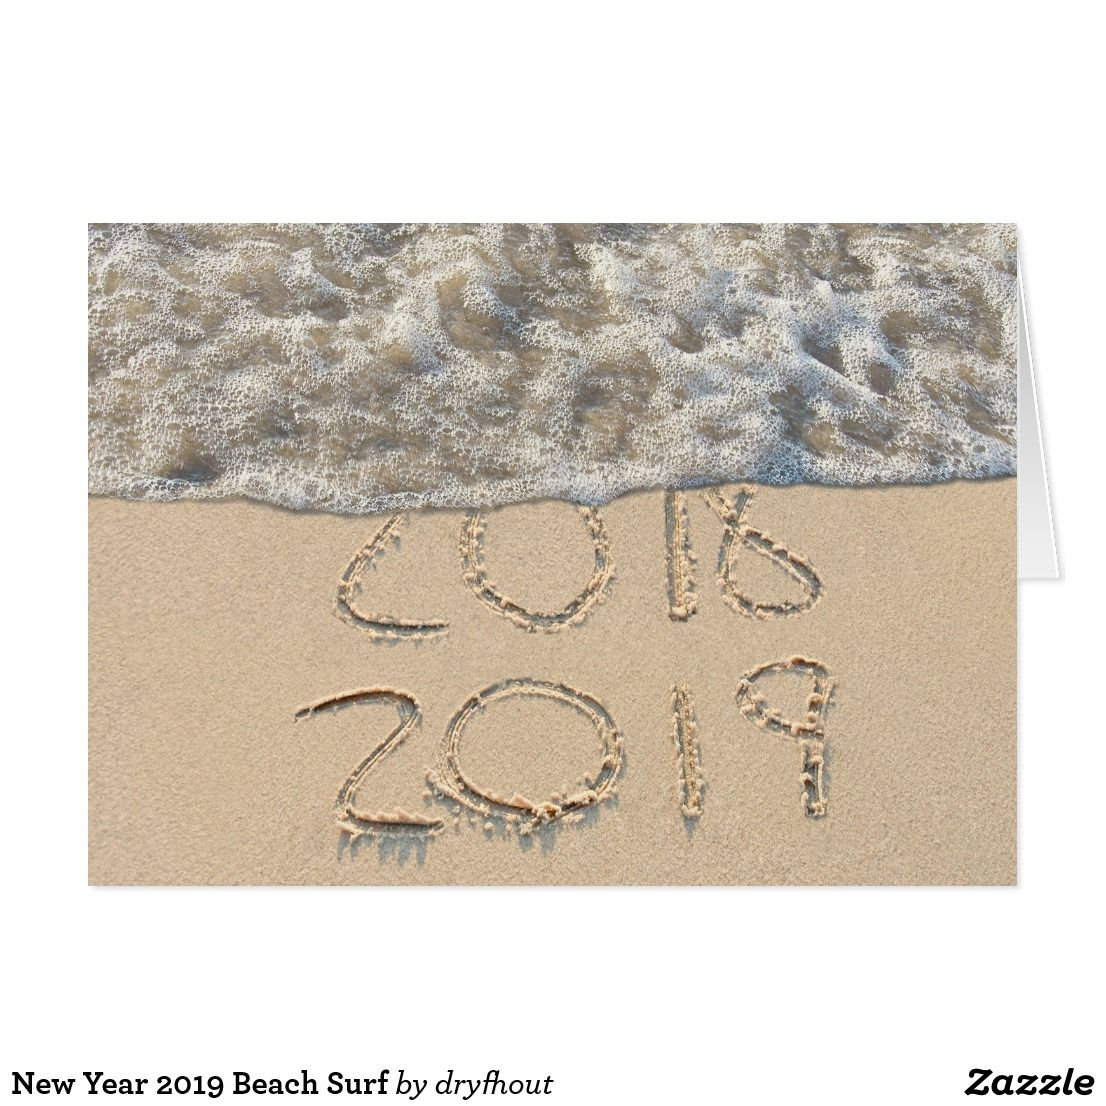 new year 2019 beach surf funny new years cards cutenew year cardhappy new year cardnew year greeting cardhappy new year greeting cardsnew year ecards